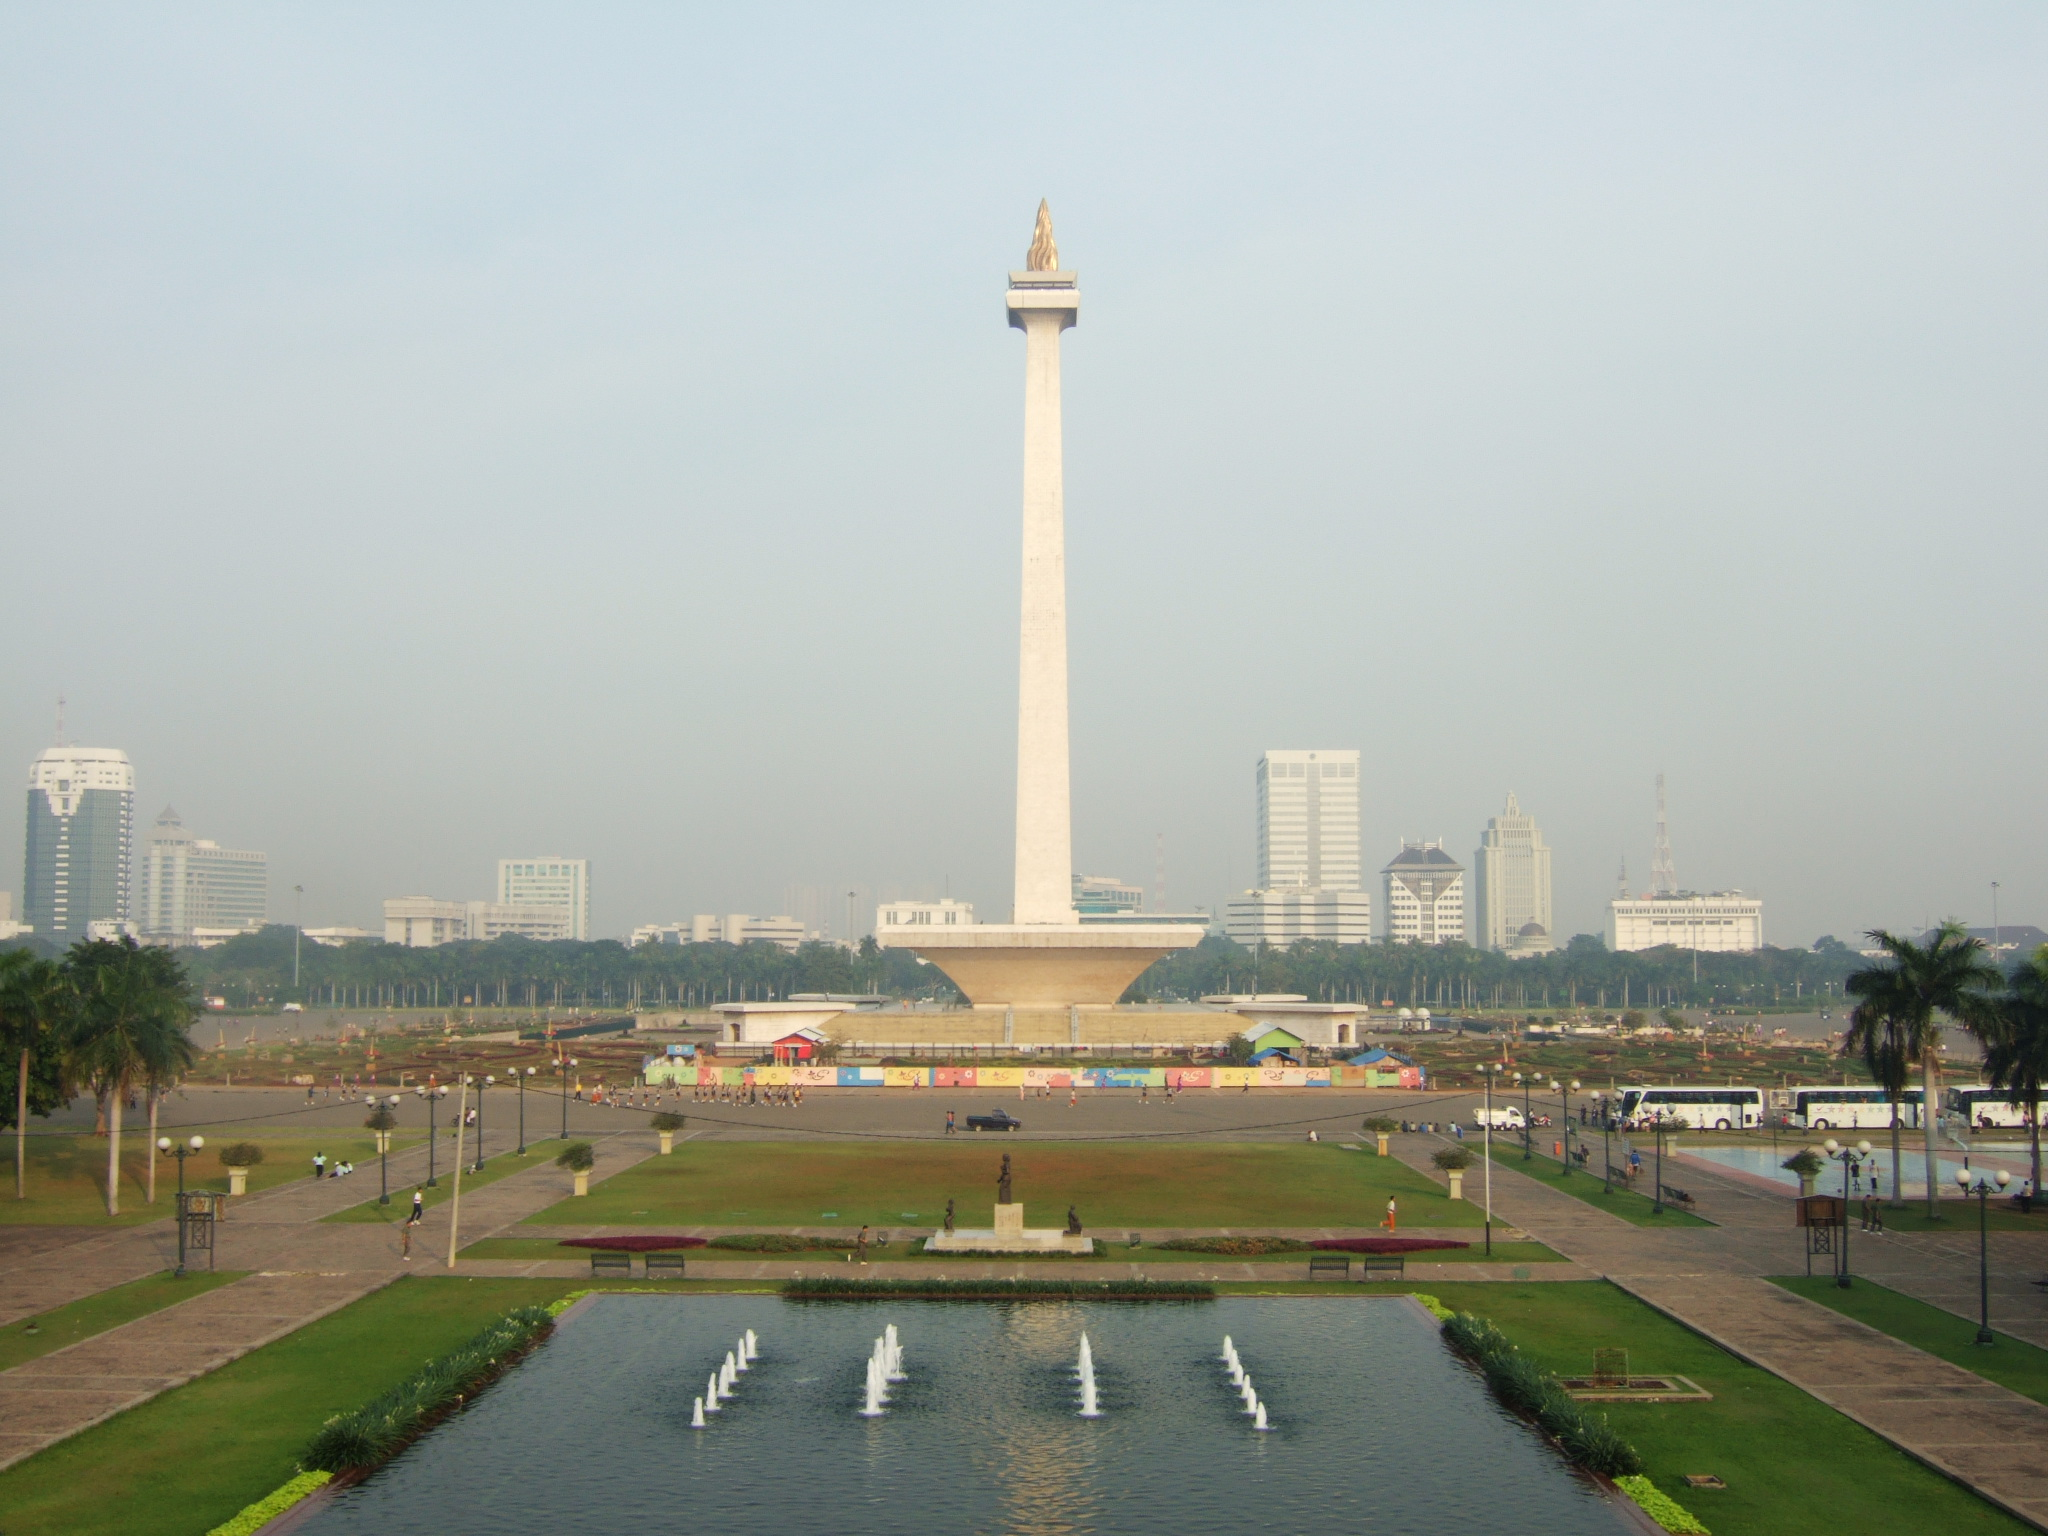 Who started the War? » Monas